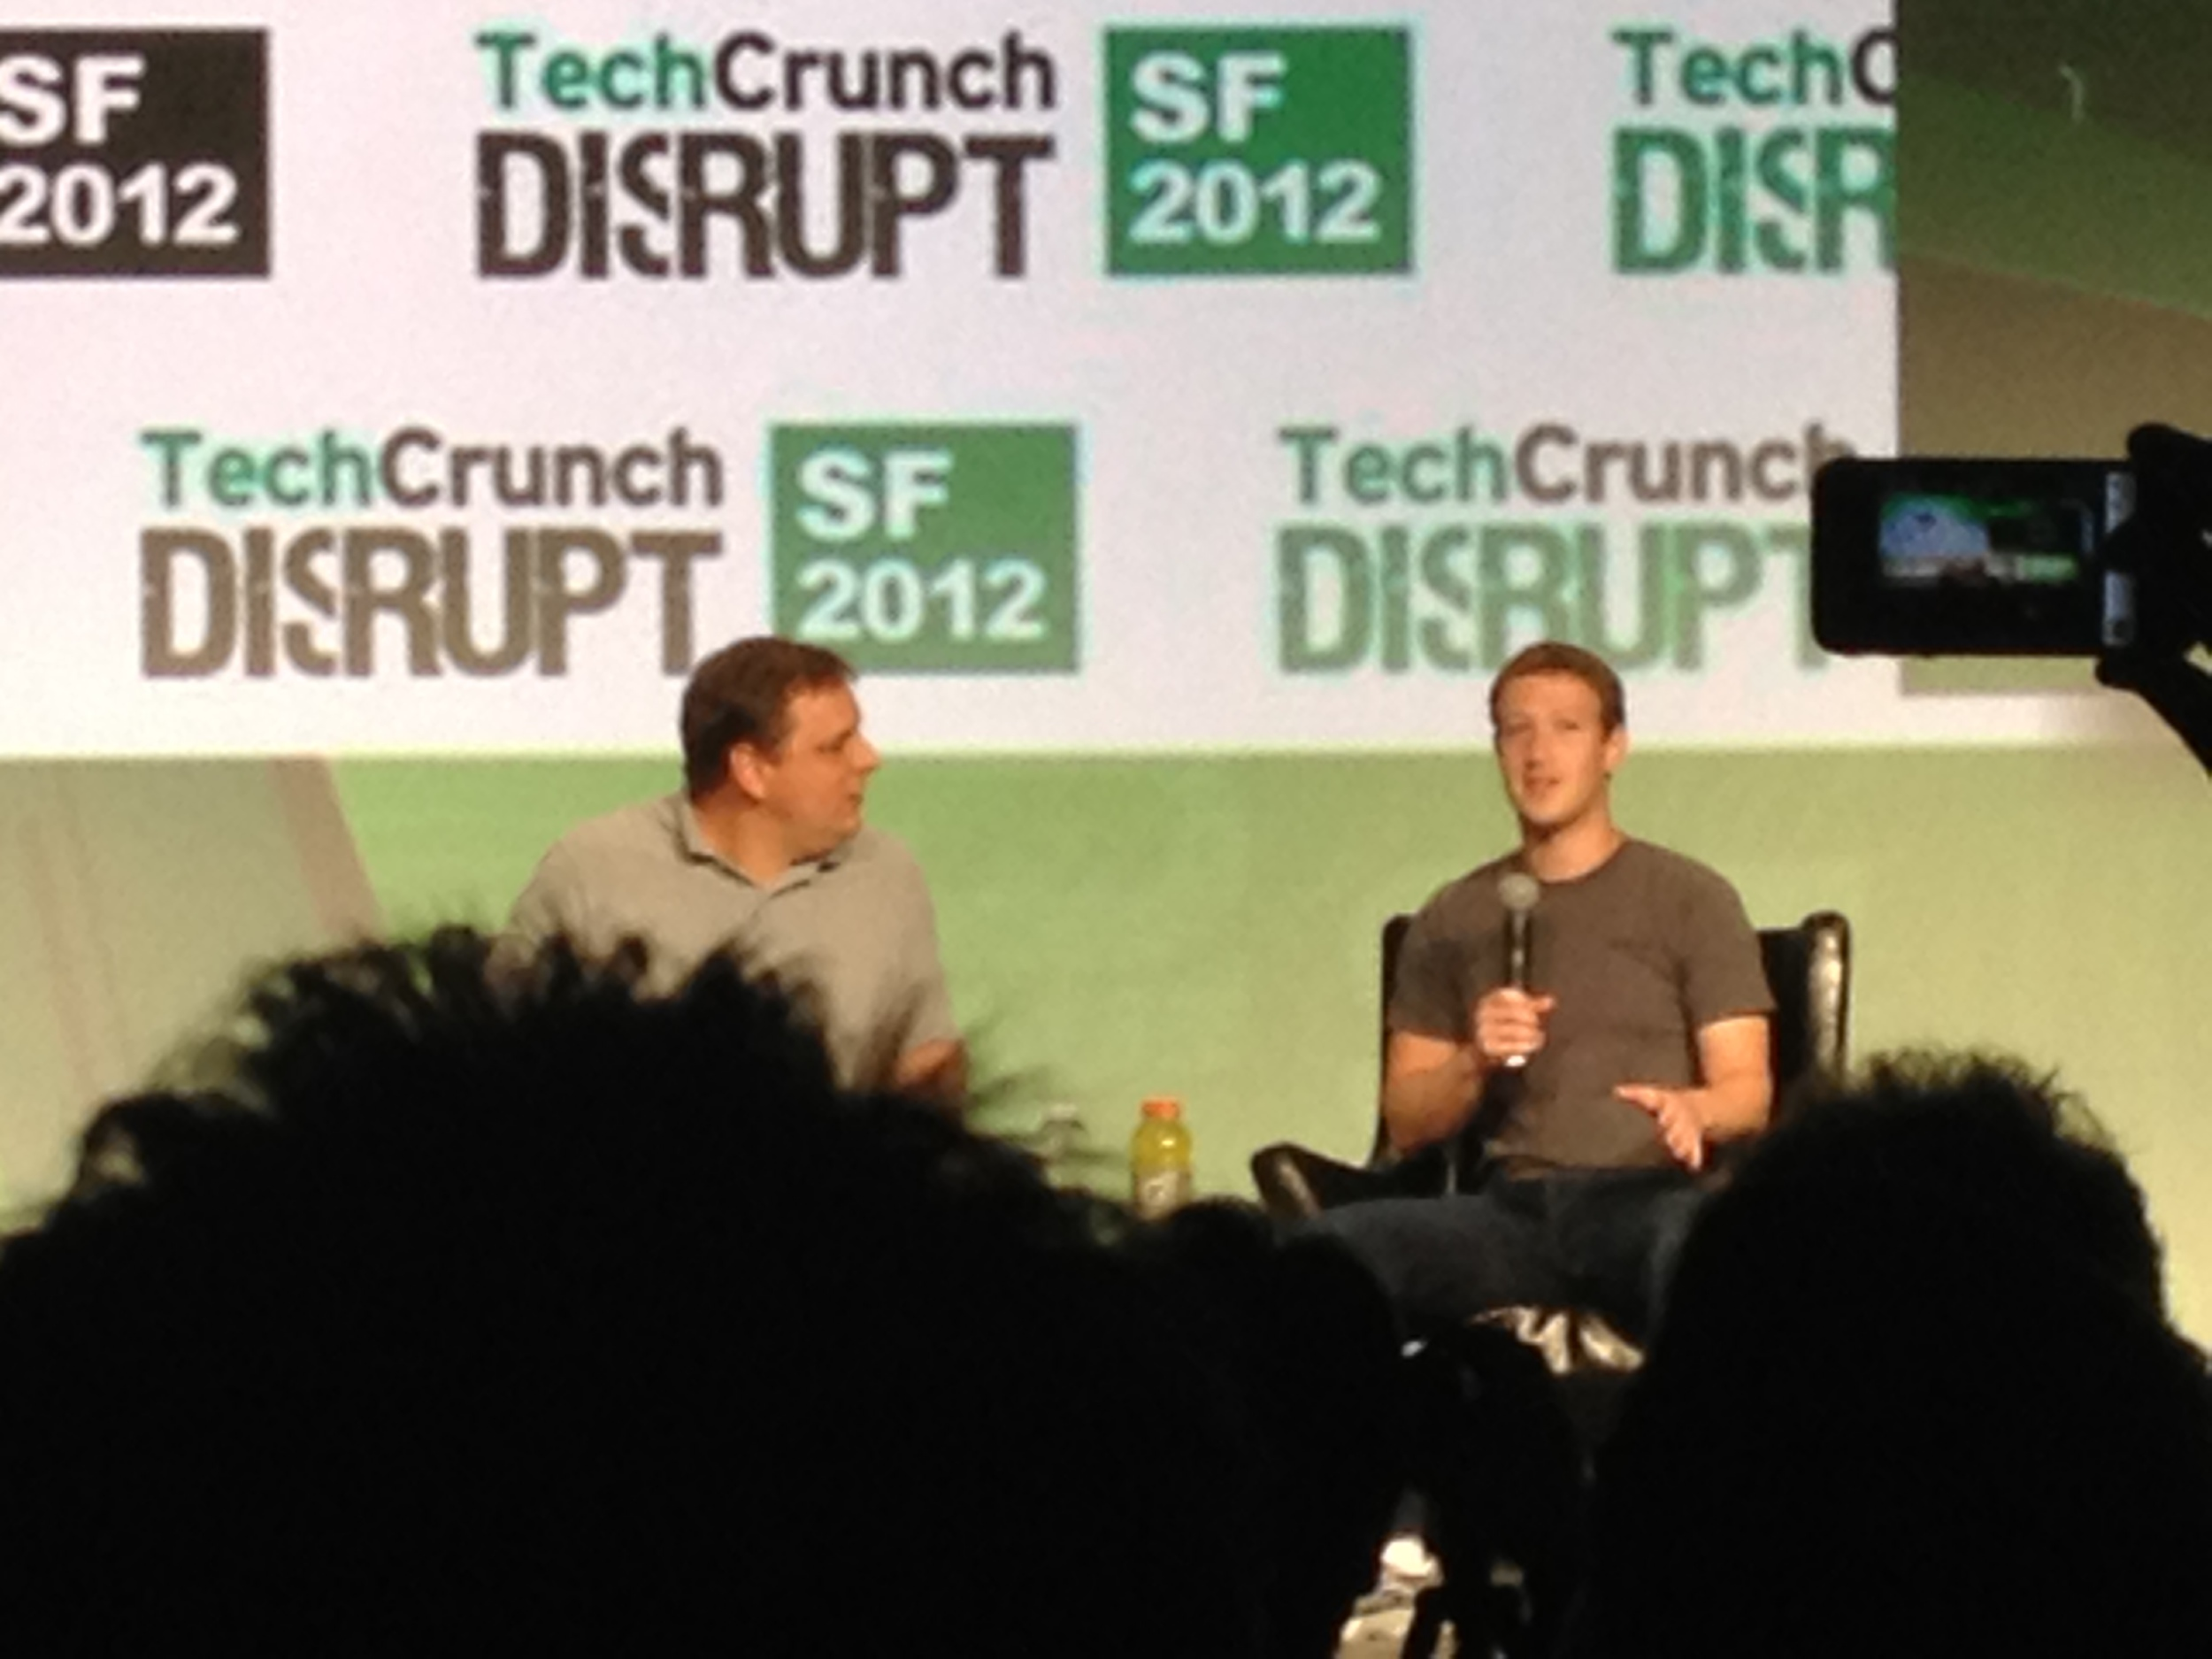 Michael Arrington with Facebook founder and ceo, Mark Zuckerberg.